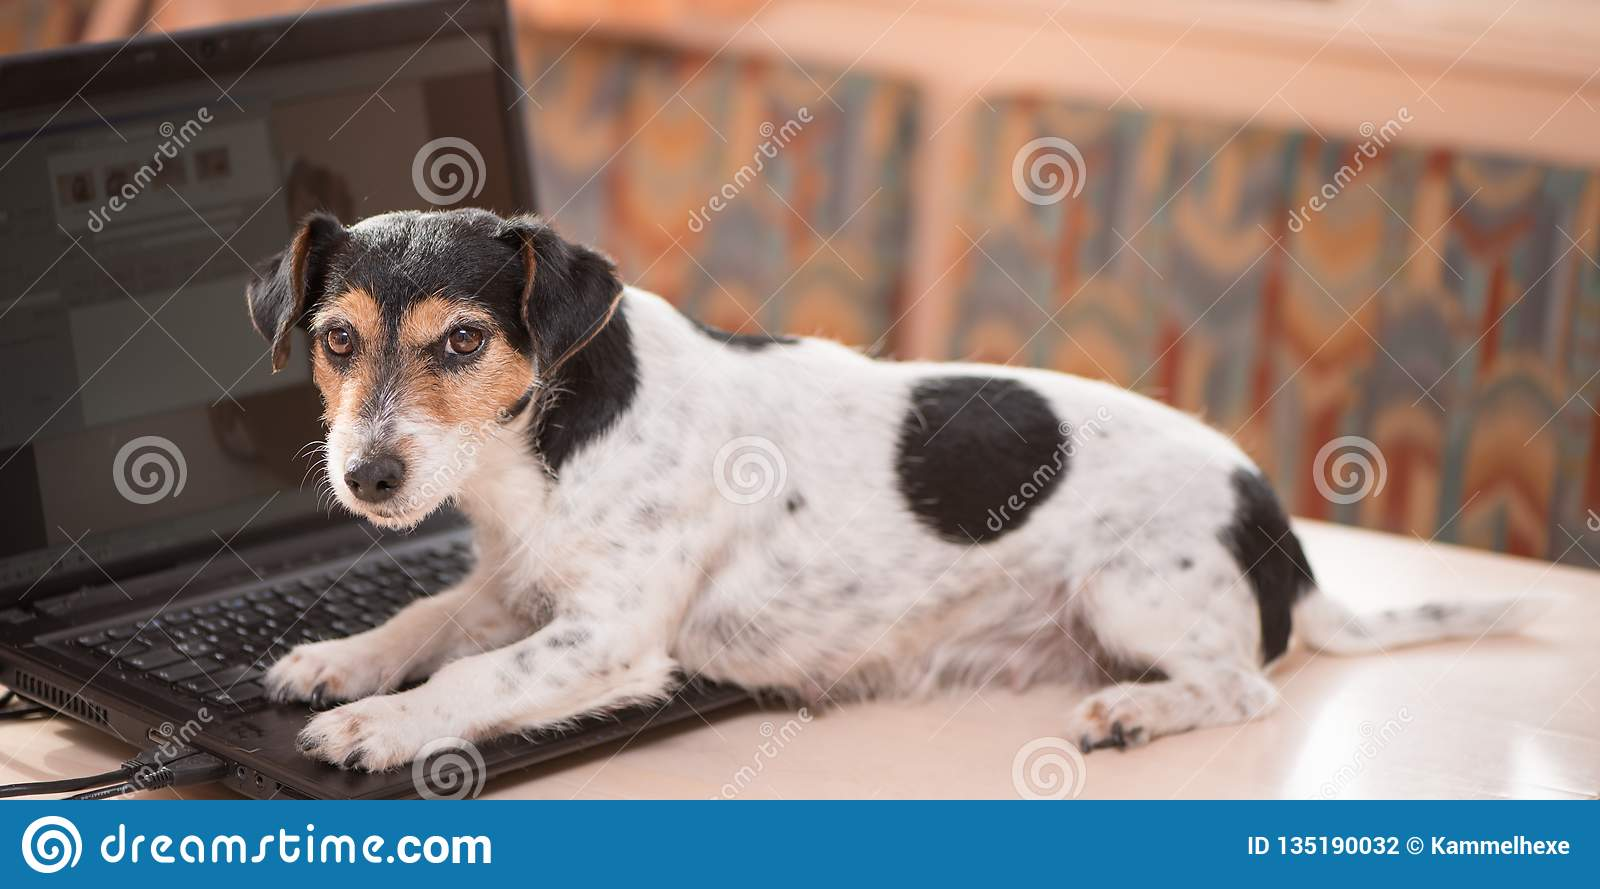 Cute computer Jack Russell Terrier dog. Naughty dog on the table